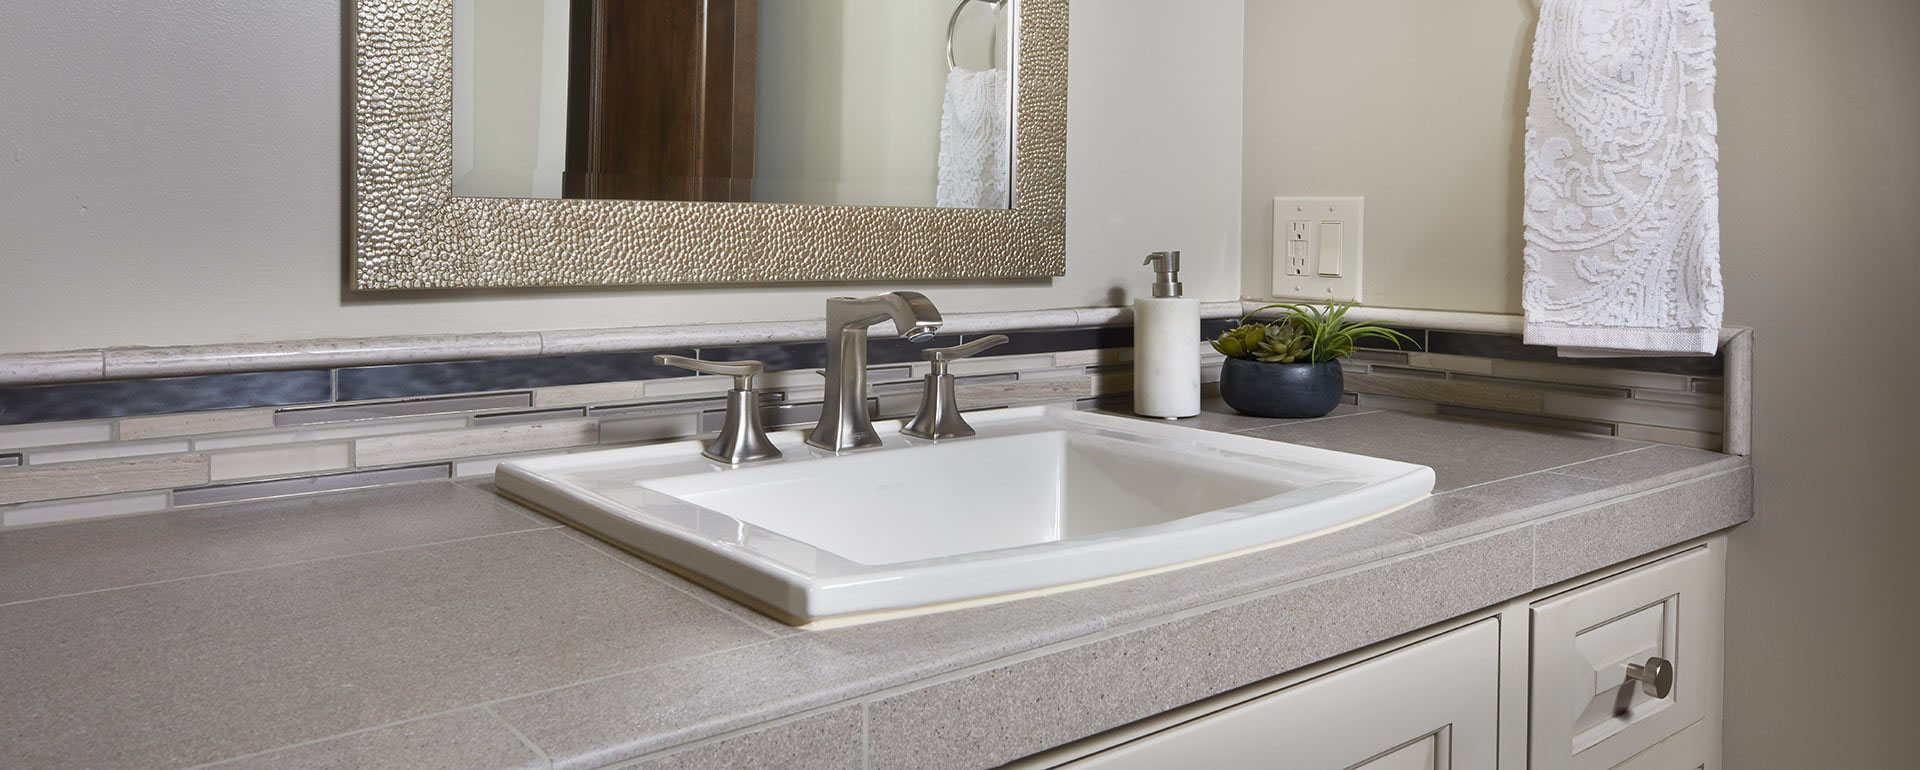 Countertops For Kitchen And Bath Tile Lines